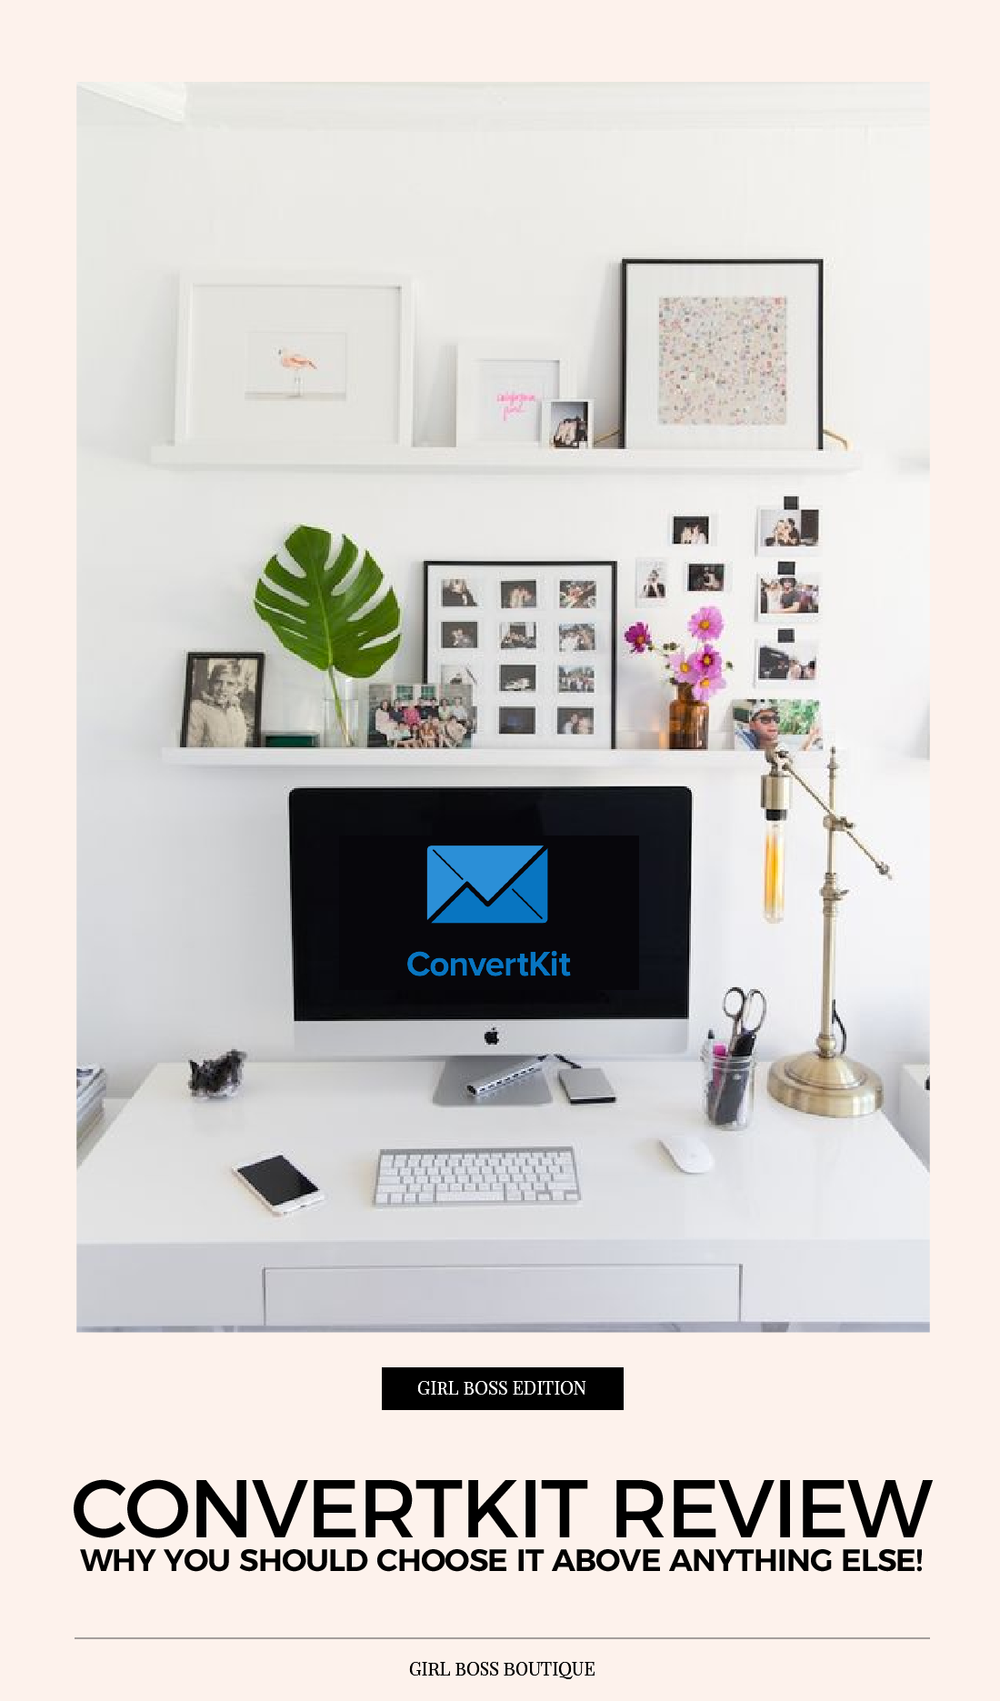 ConvertKit Review Why you should choose it above anything else.png